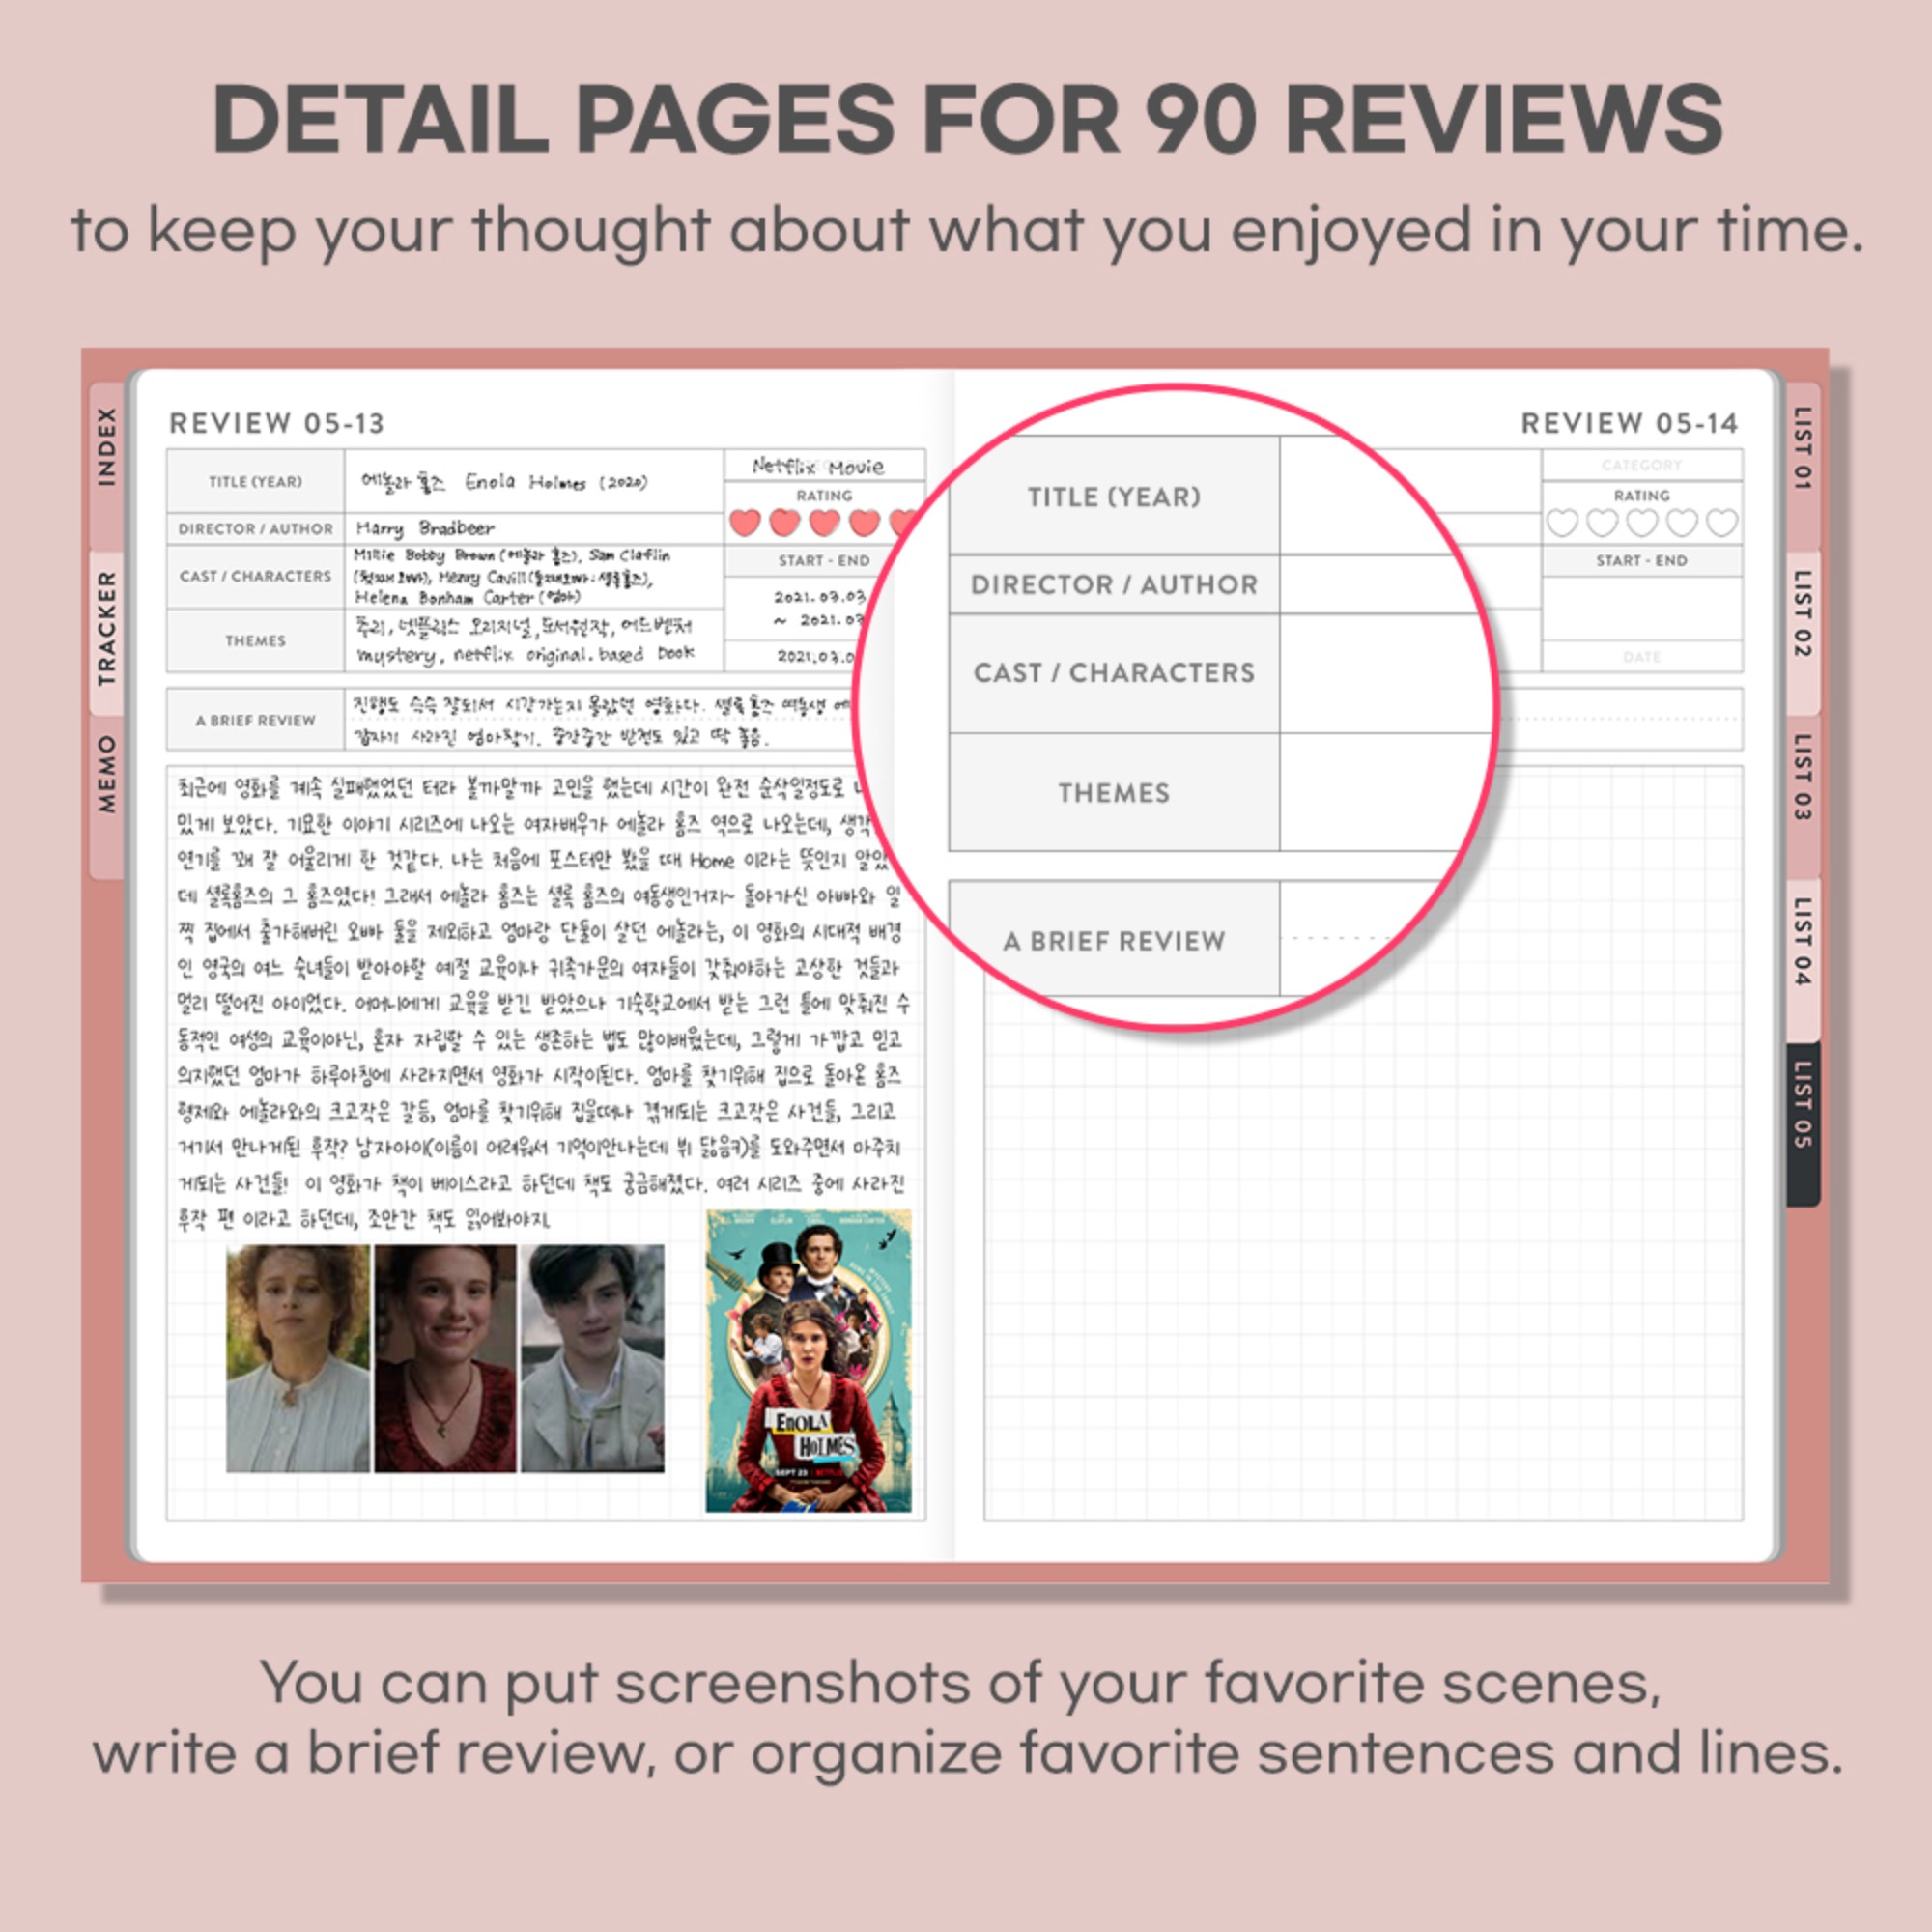 All in one review note (Dusty Pink)